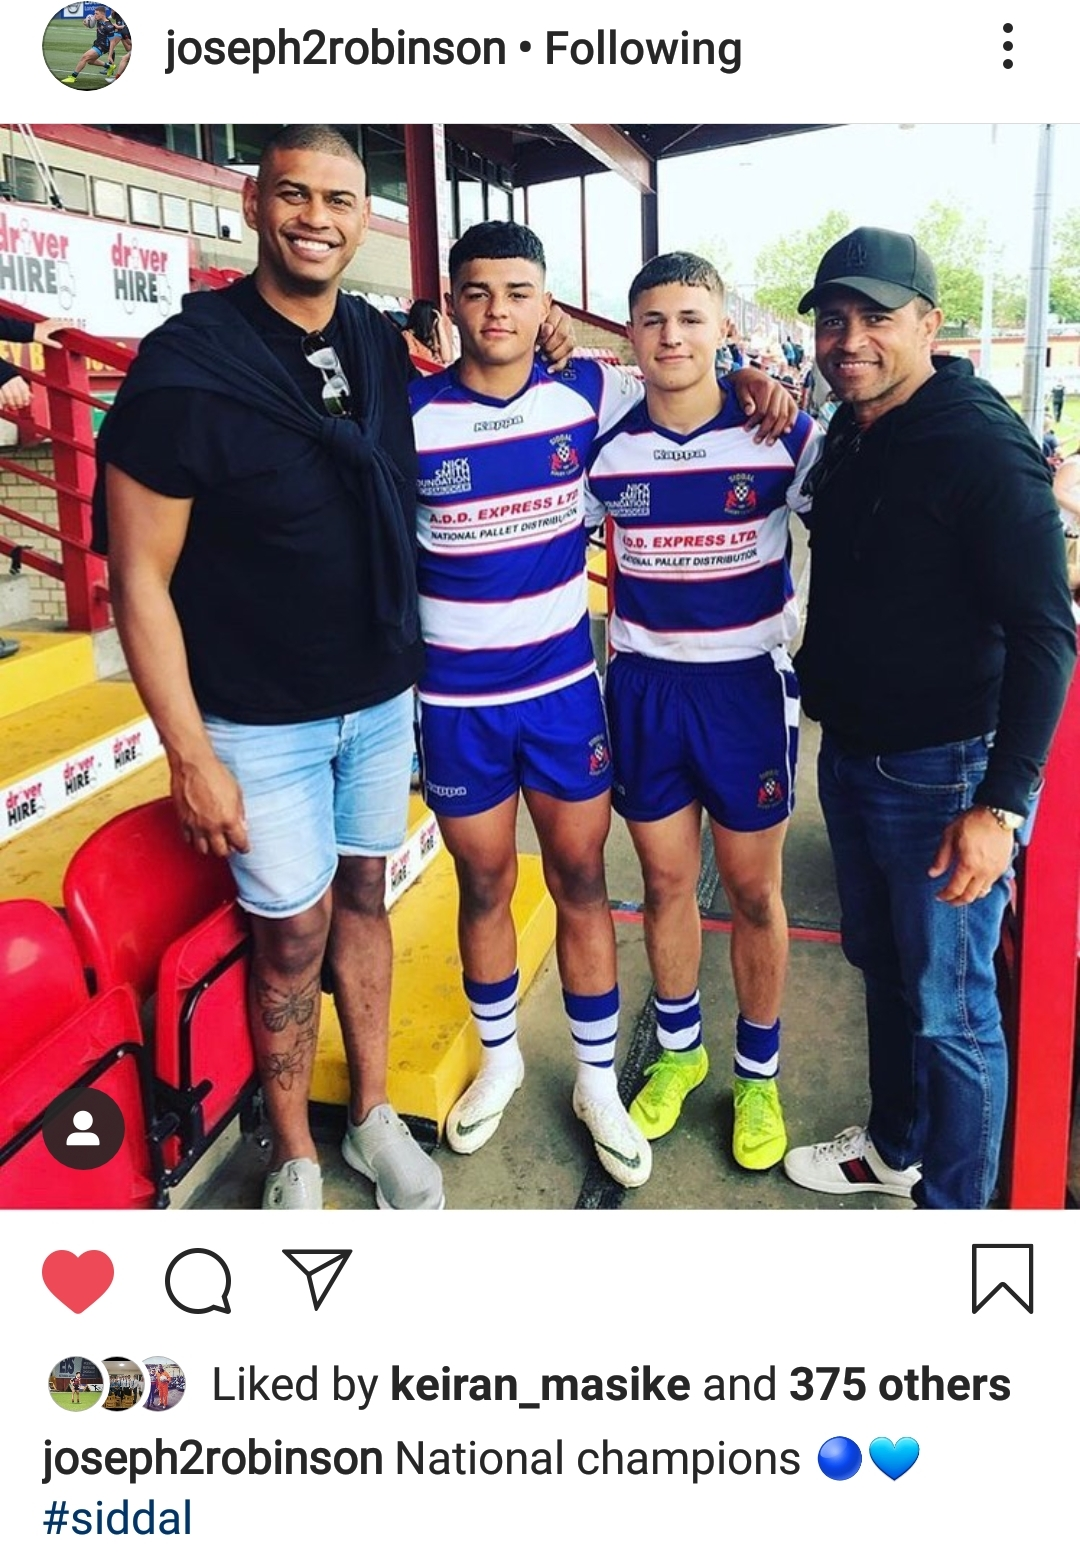 Rugby legends. Joseph Robinson posted this photo after the national cup final with his dad, team mate Will Pryce and Will's father Leon Pryce who is also a global rugby figure.